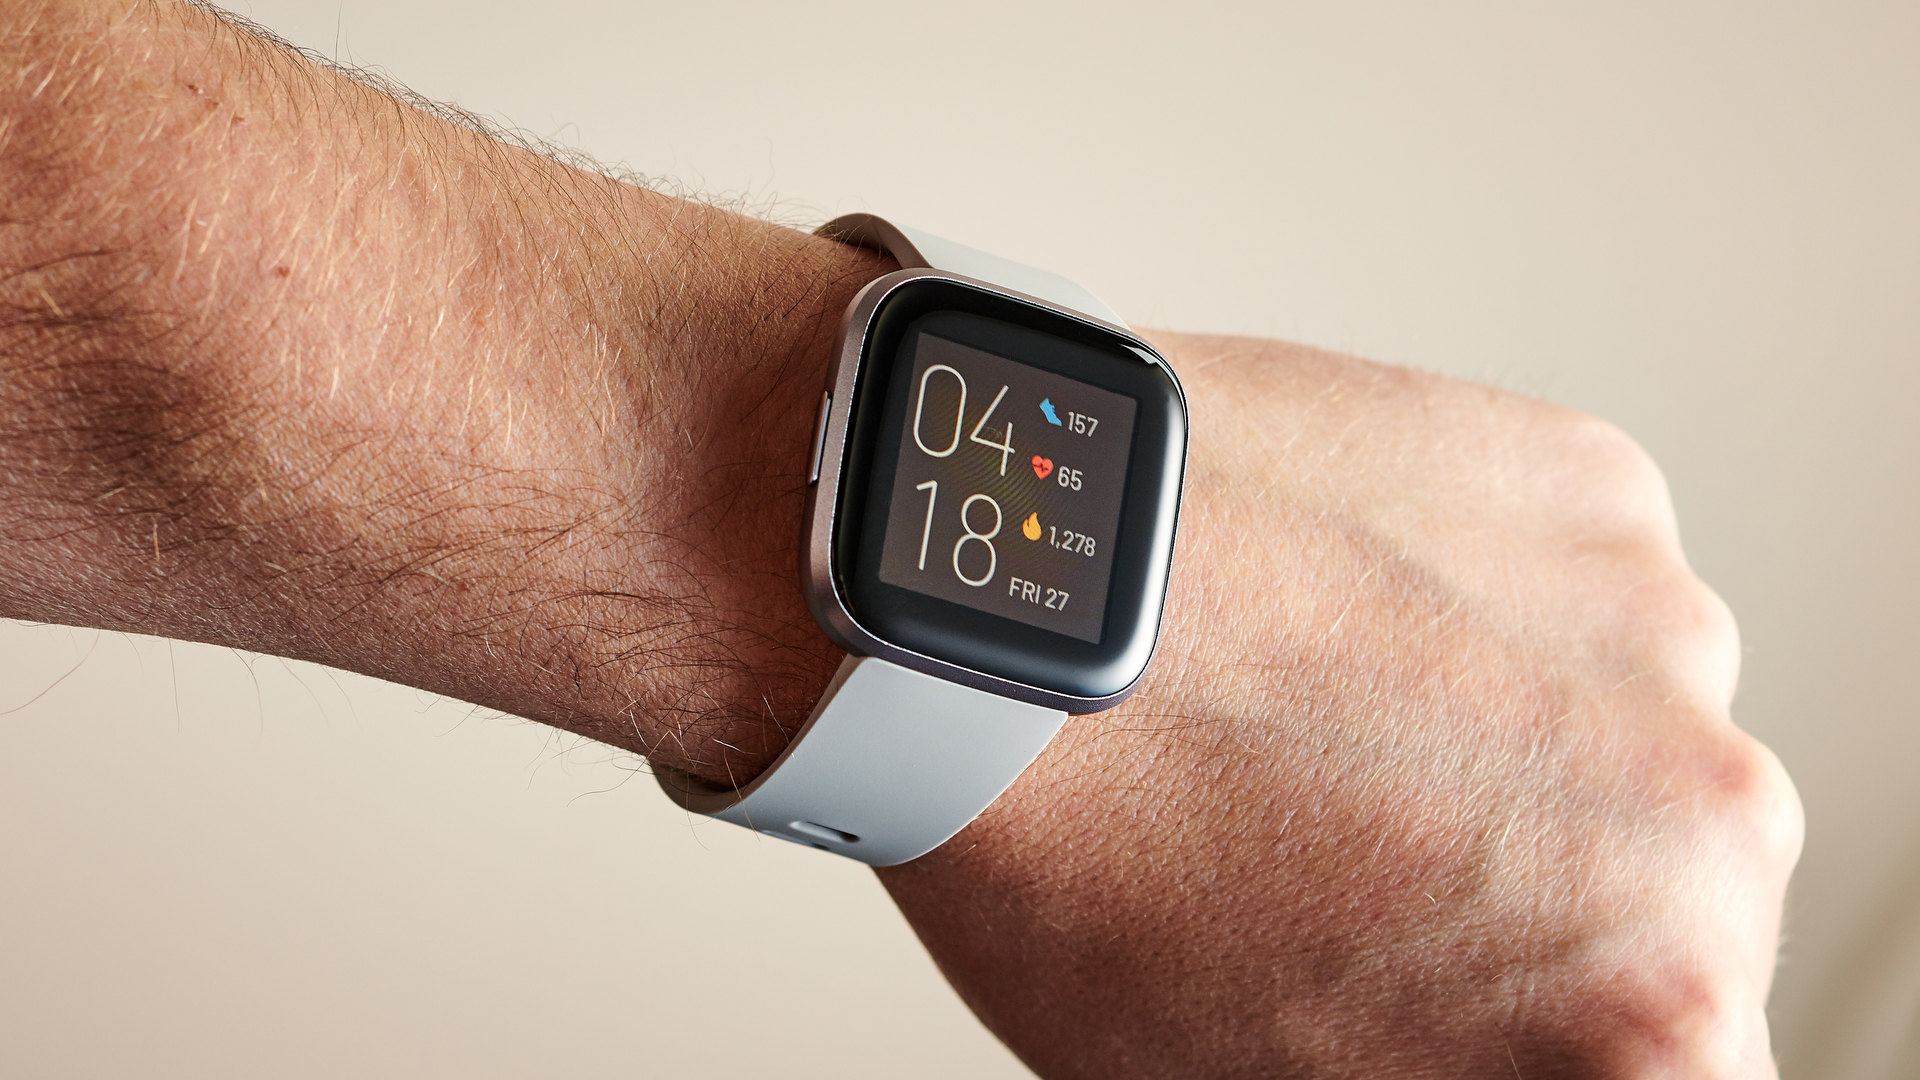 The Versa 2's design should suit most wrists